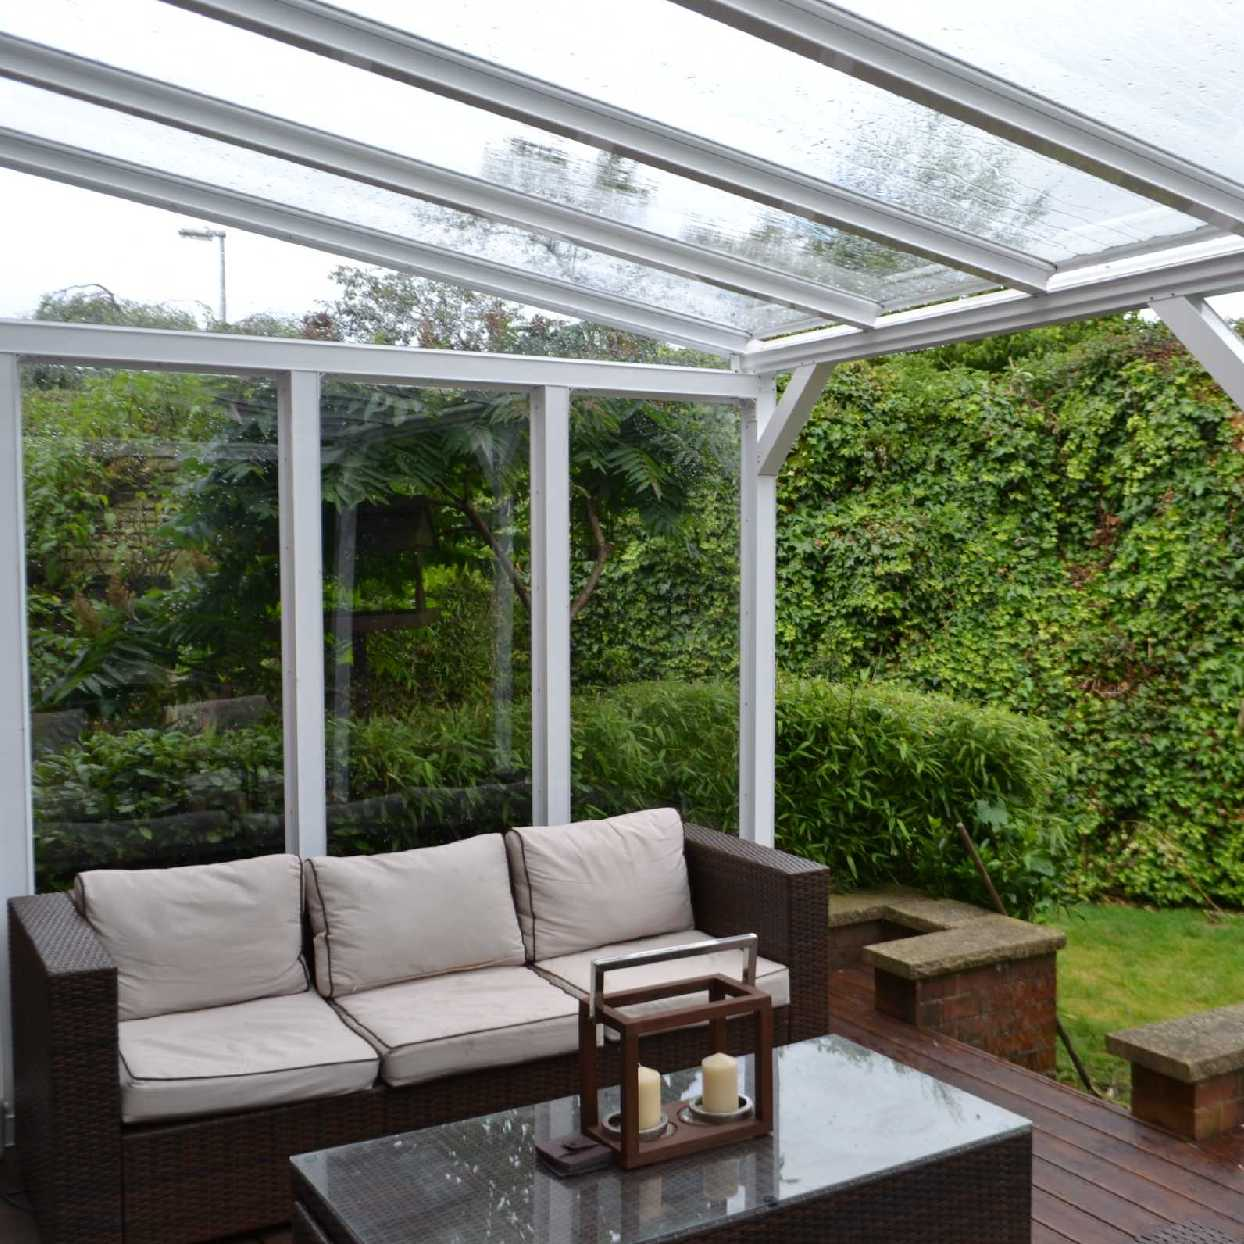 Great selection of Omega Smart White Lean-To Canopy with 16mm Polycarbonate Glazing - 12.0m (W) x 3.0m (P), (5) Supporting Posts